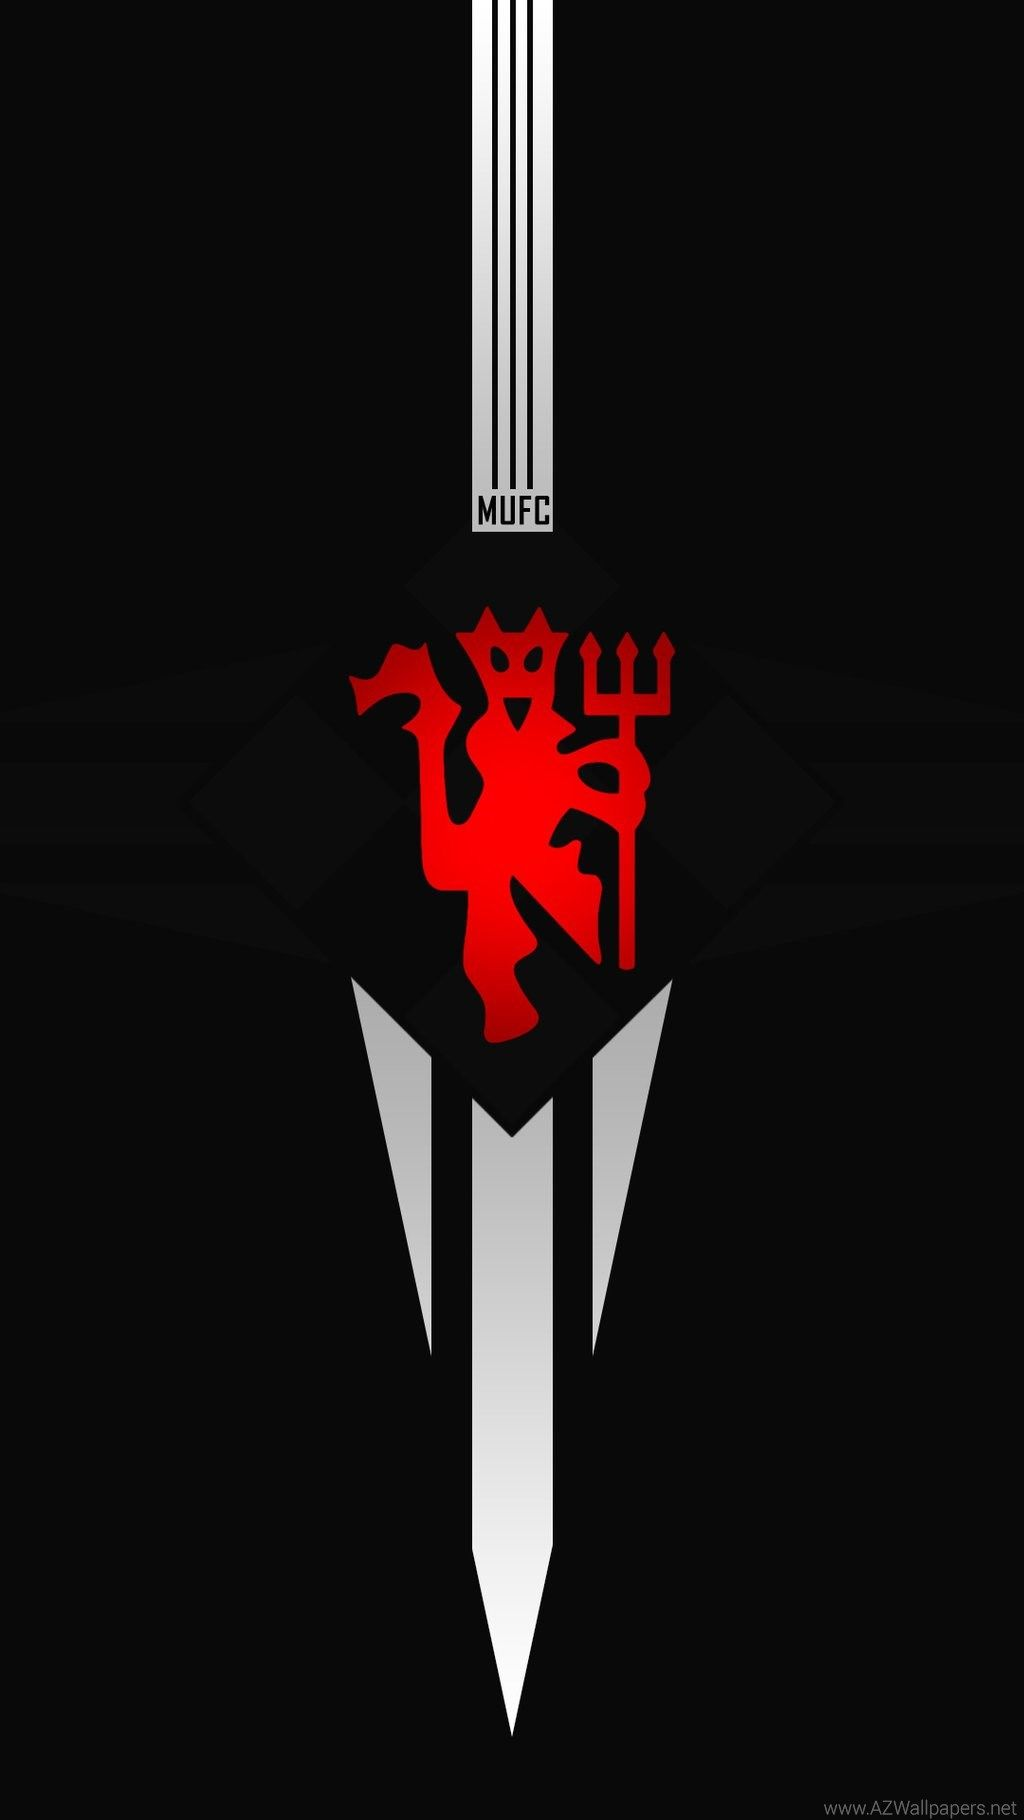 Pin By Ajabu Sant On Disen Logo Bola Hd In 2021 Manchester United Art Manchester United Wallpaper Manchester United Logo